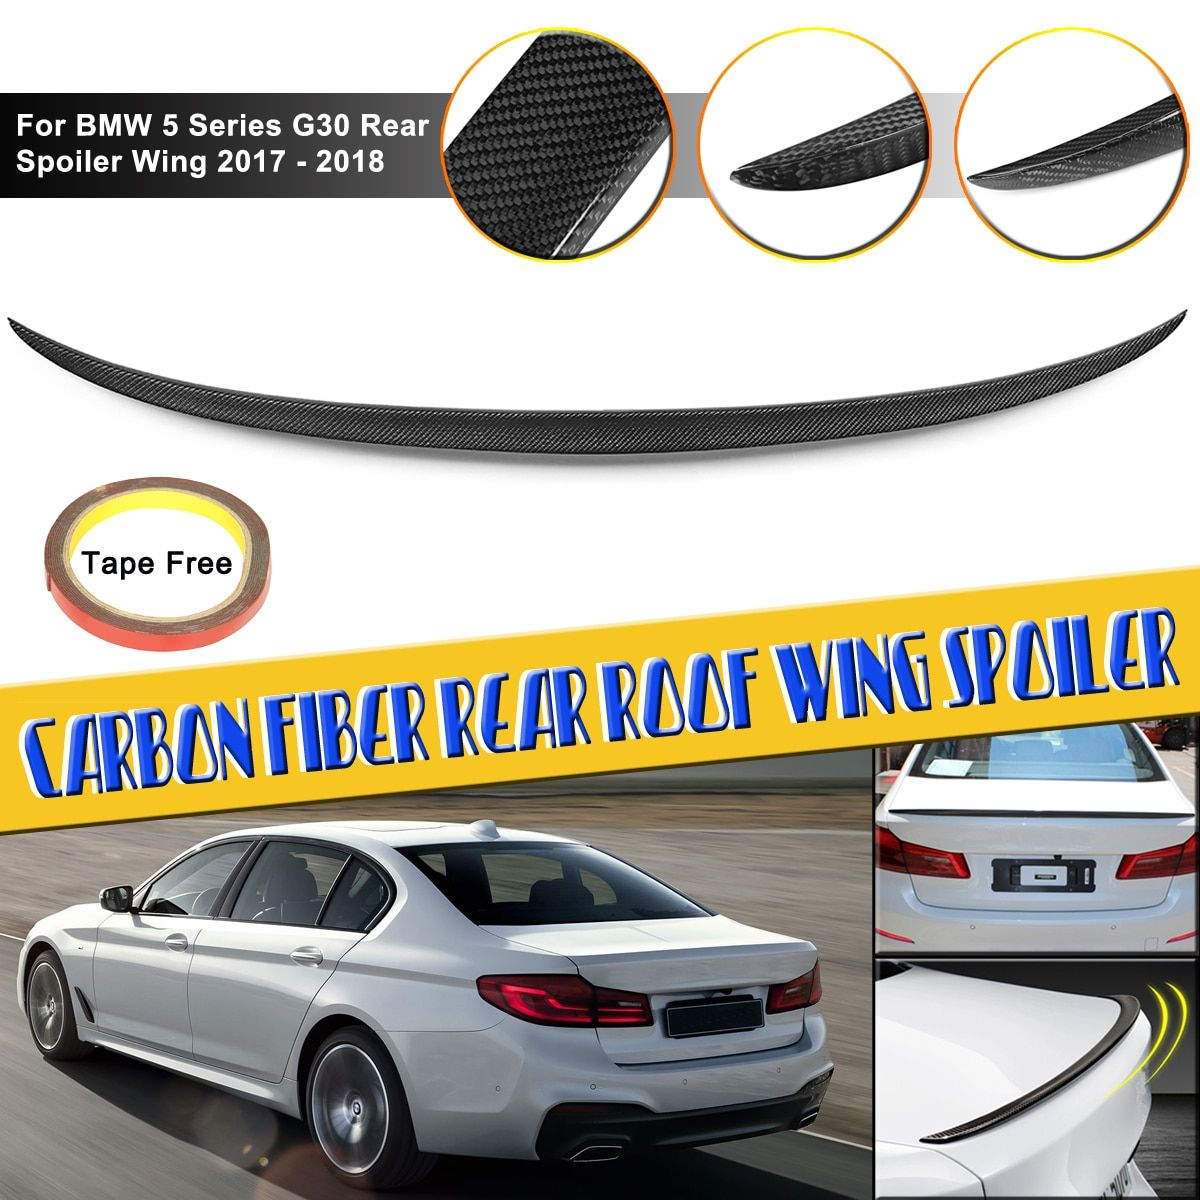 5 Series G30 Full Real Carbon Fiber Roof Wing Spoiler Fit For BMW 5 Series G30 Rear Spoiler Wing 2017 - present